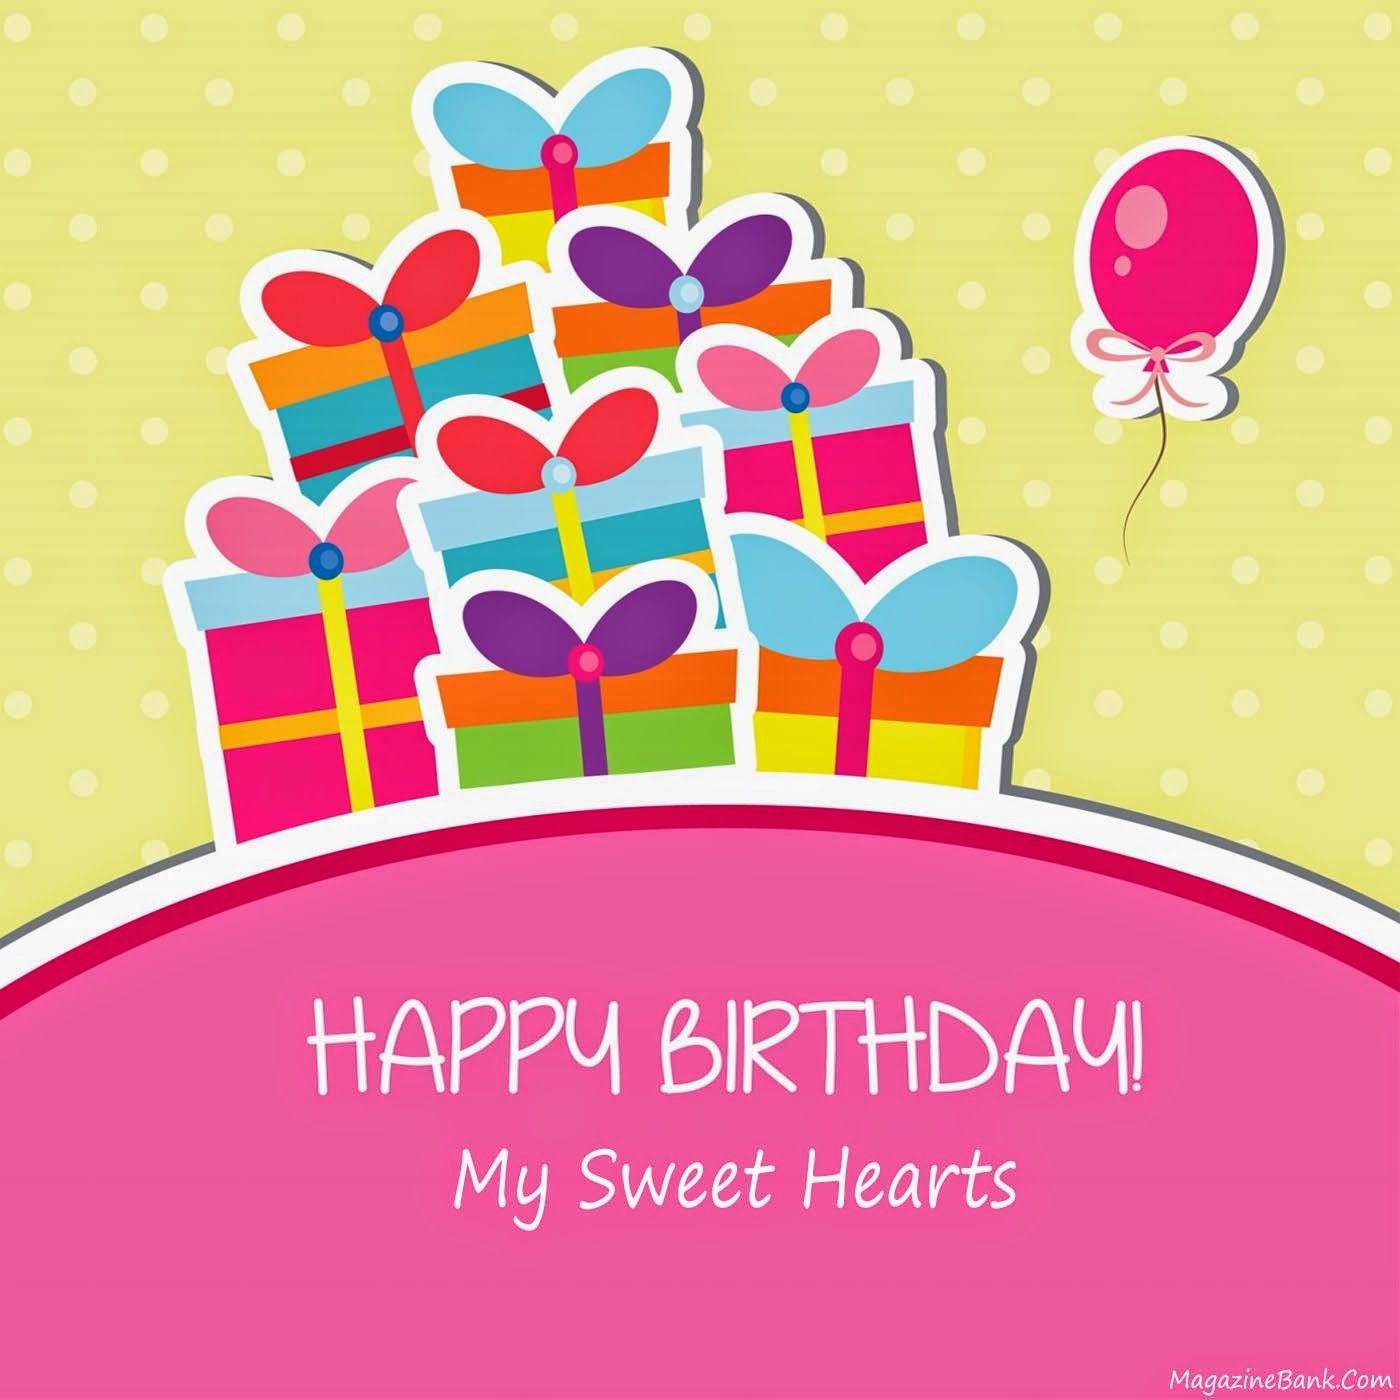 Top 10 Best Happy Birthday Wishes Cards Images